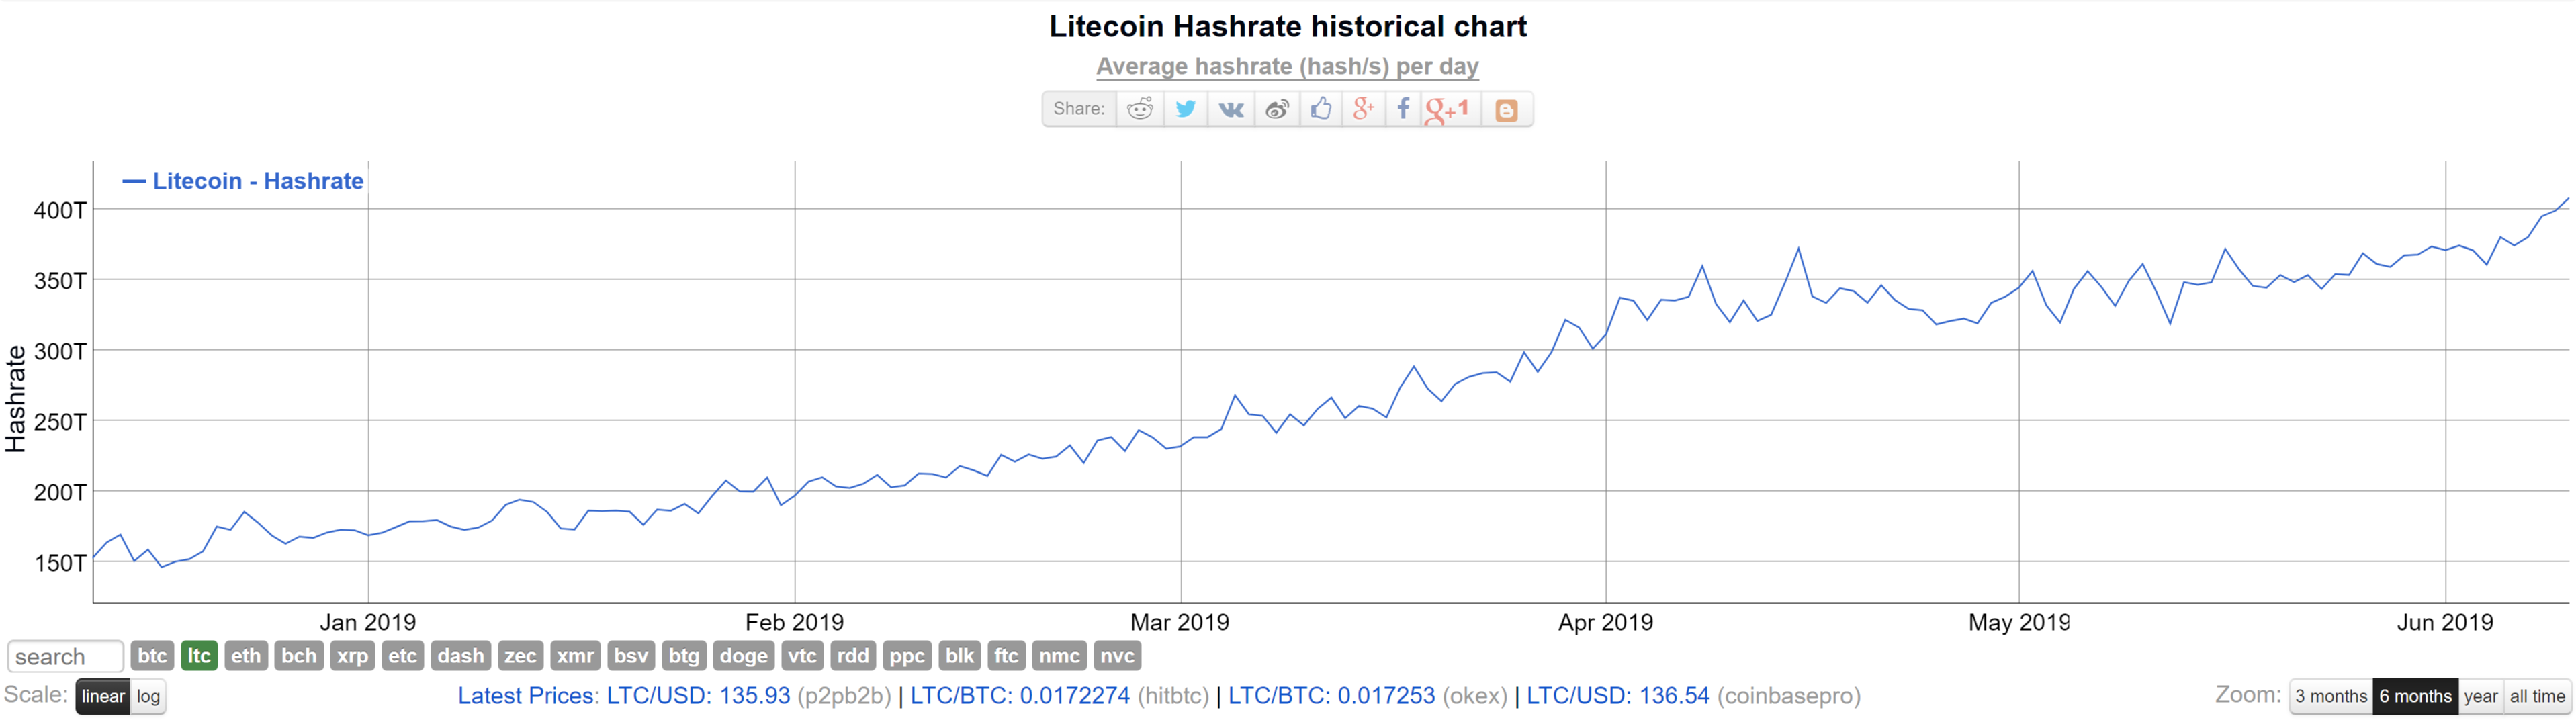 litecoin hash rate